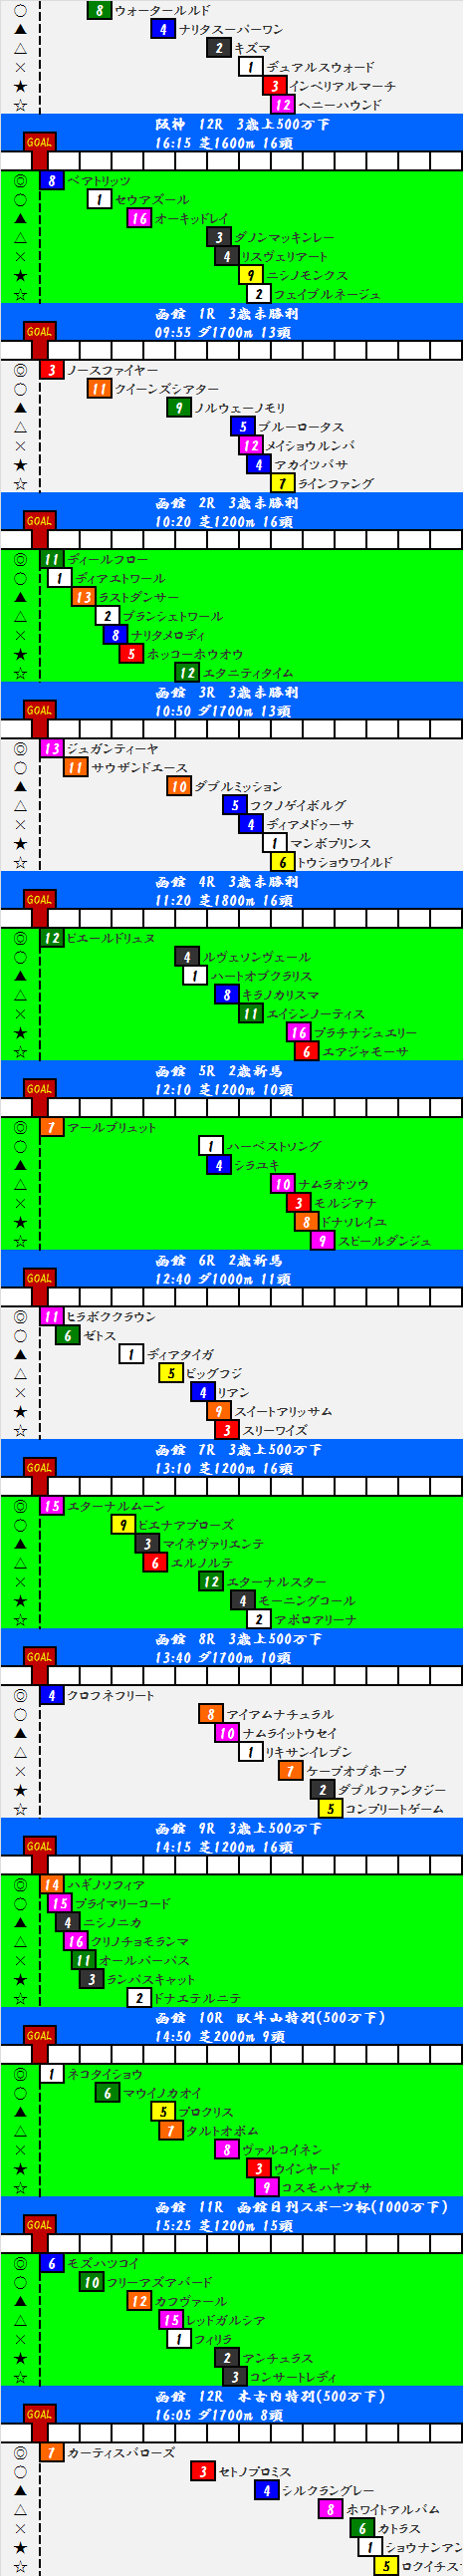 201406212.png